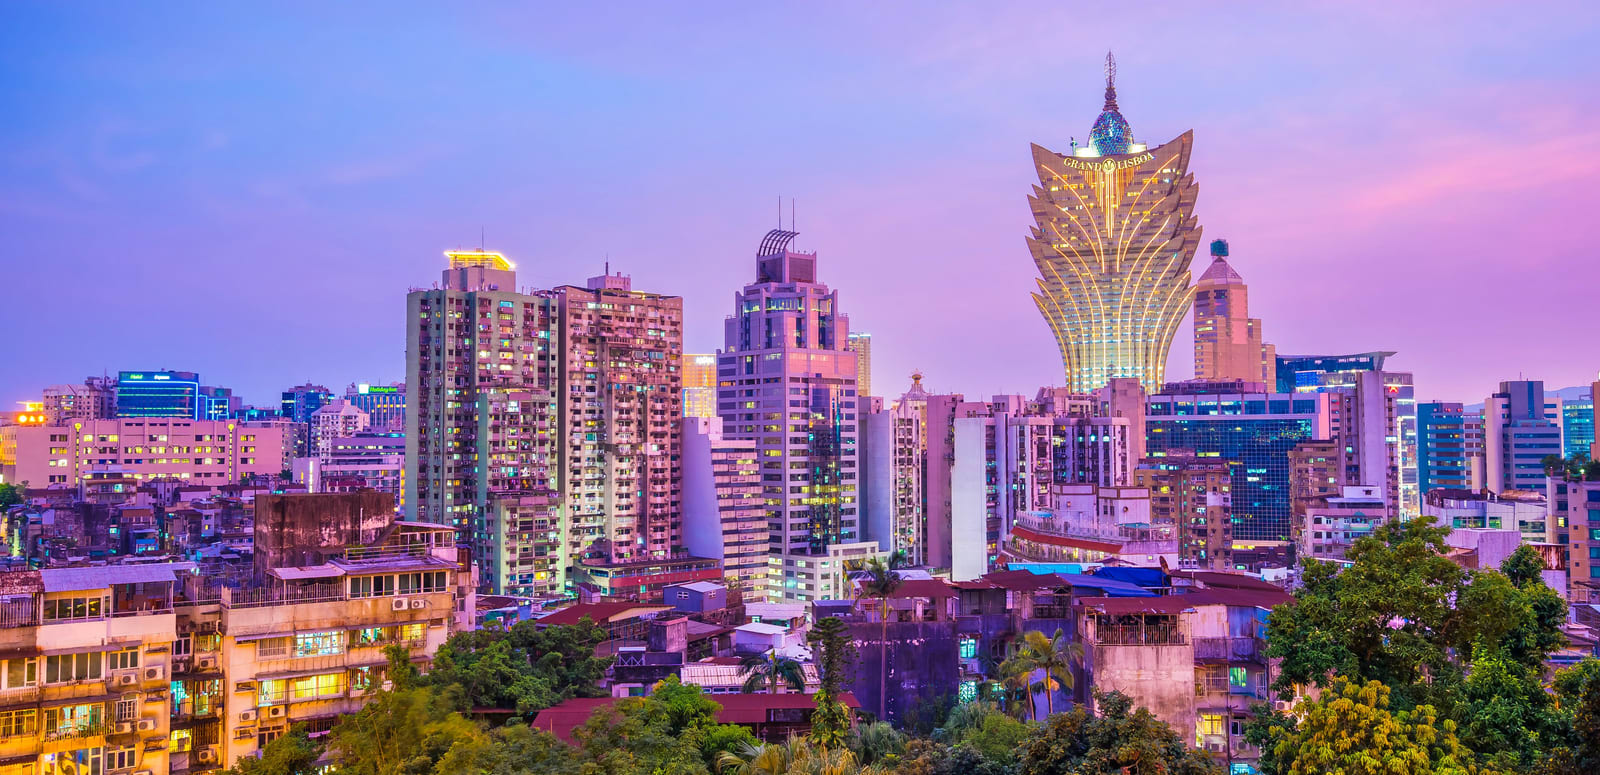 1573660097_dmo-the-busy-travellers-guide-to-macau-00-hero-gettyimages-1048132776.jpg